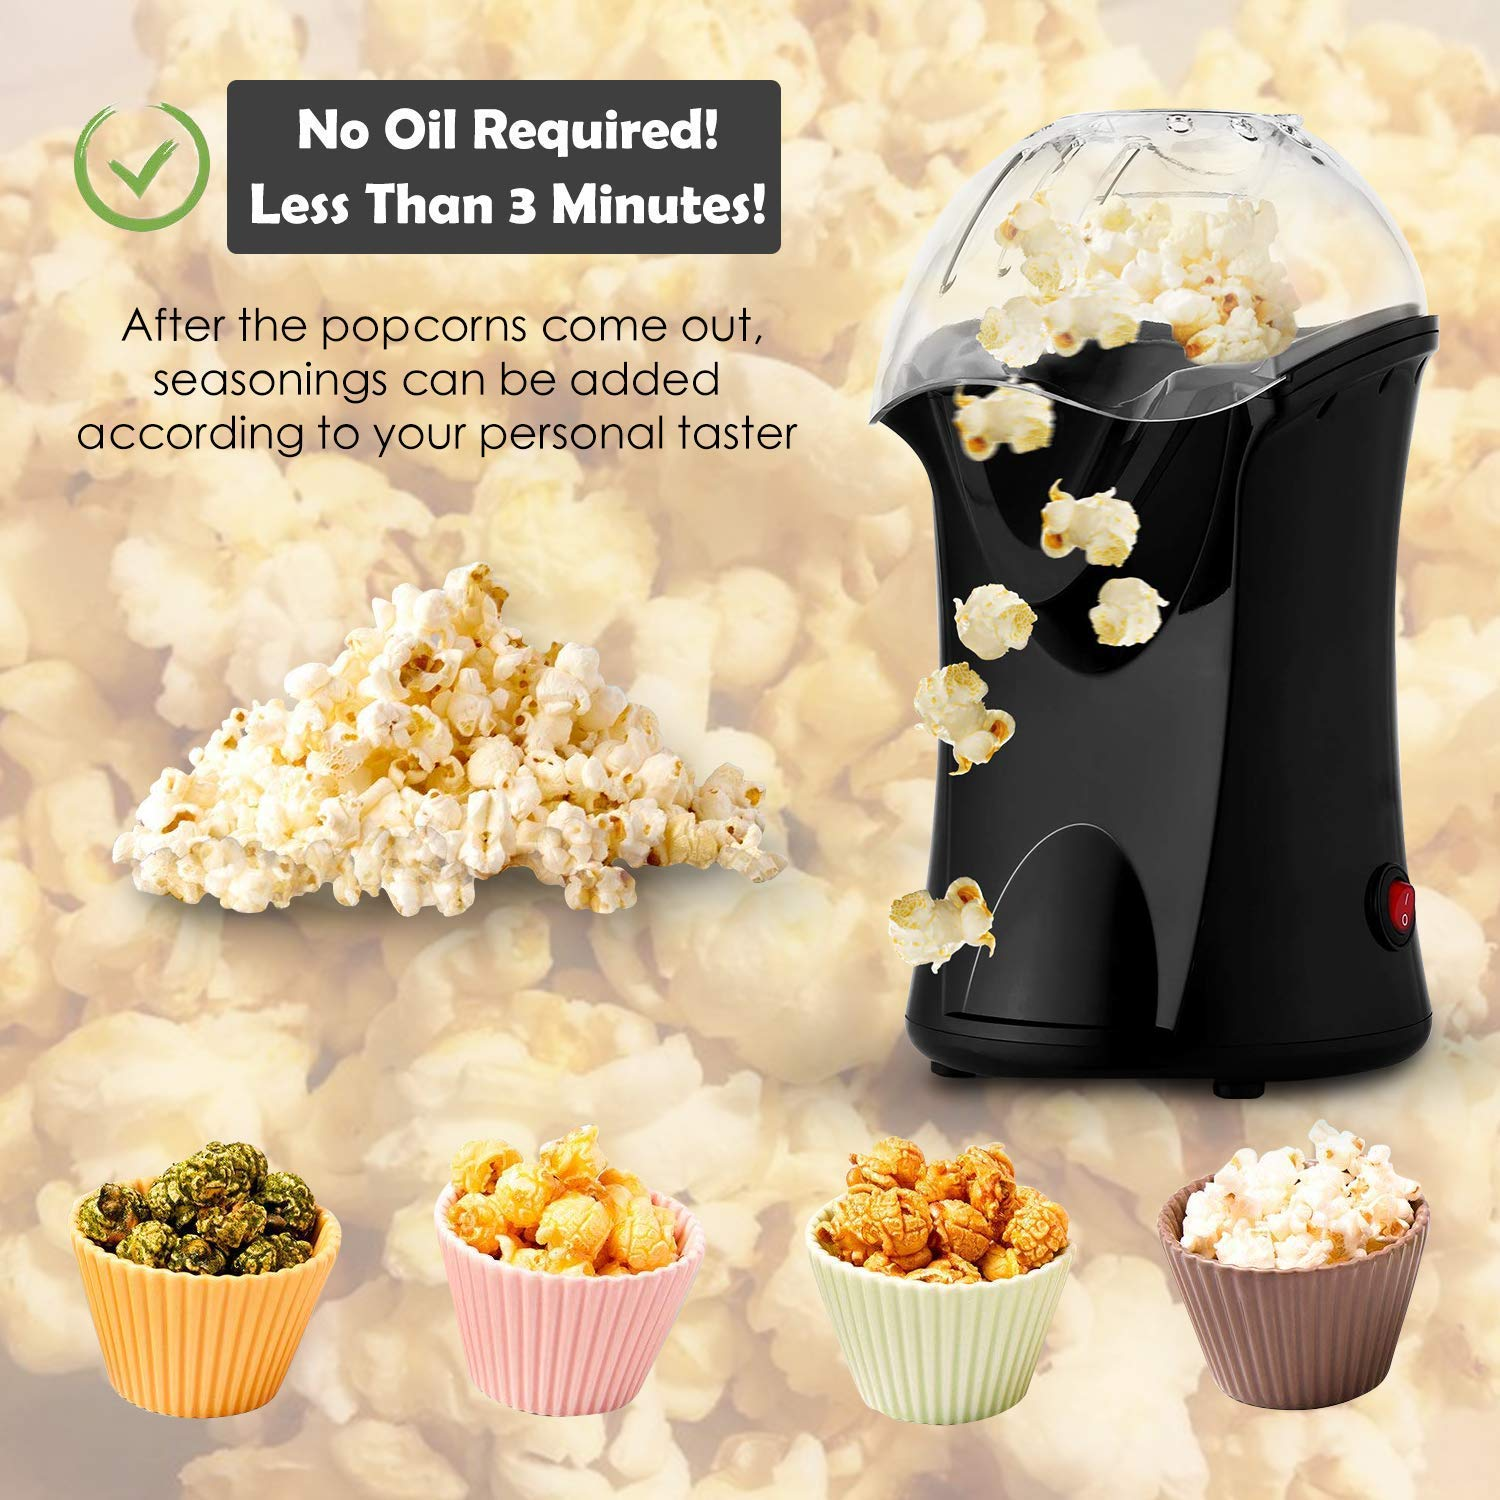 Homdox Hot Air Popper Popcorn Maker, 1200W Hot Air Popcorn Popper, Electric Popcorn Machine with Removable Lid for Home Use, No Oil Needed, Great for Kids (Black/1200W)